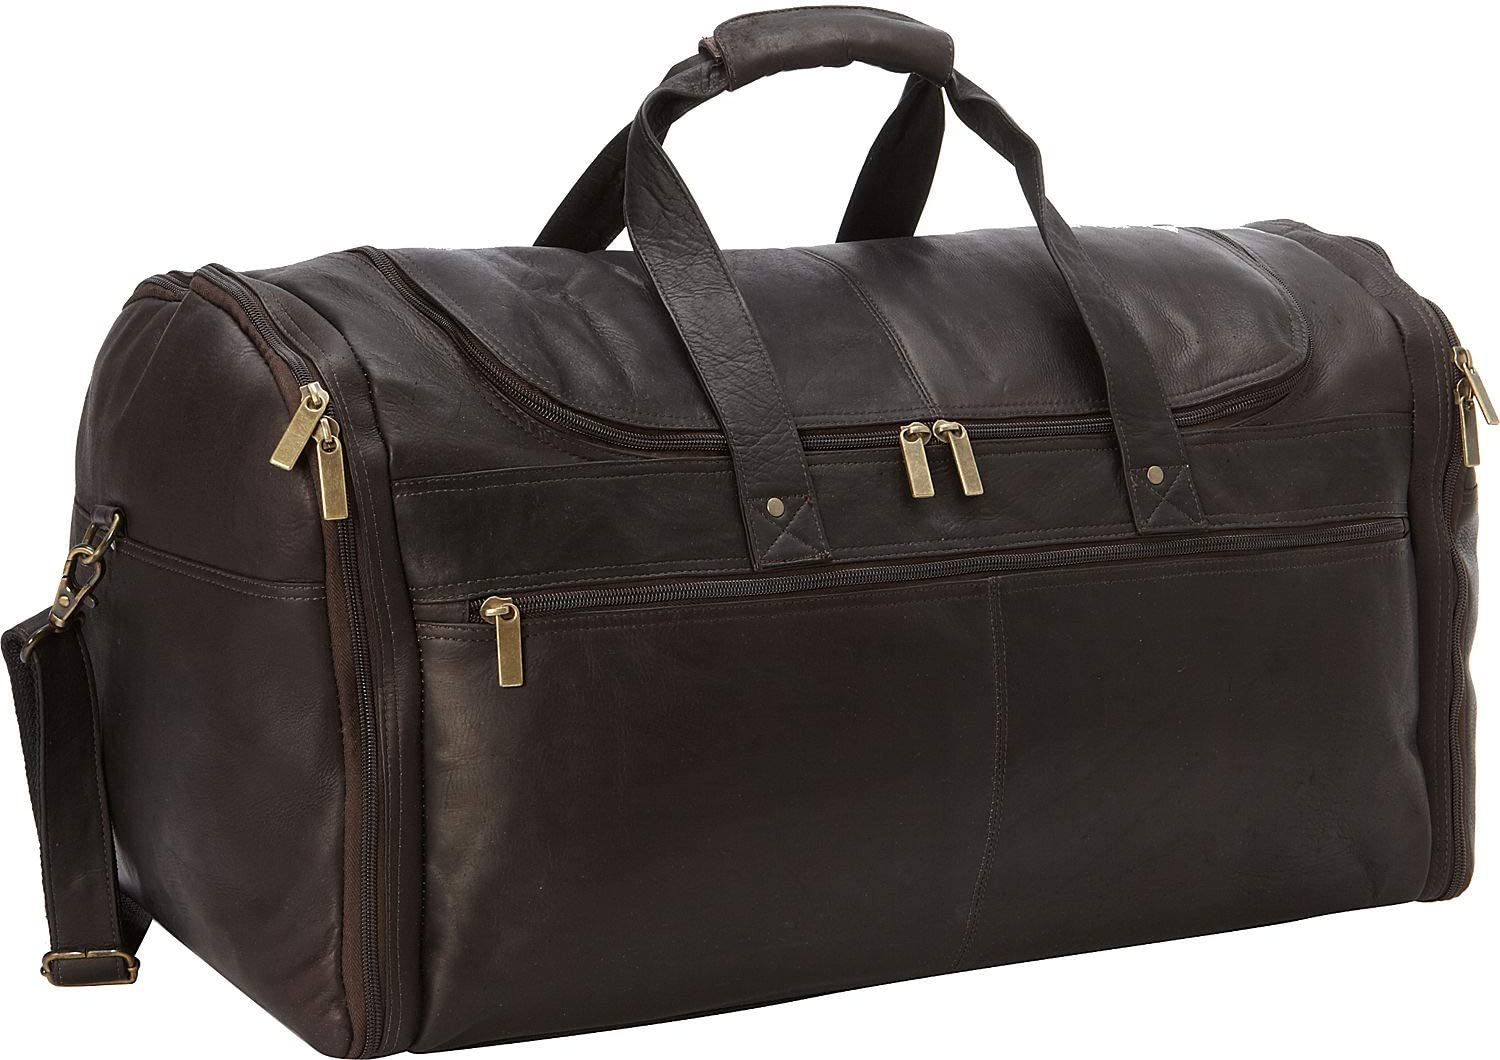 David King Leather Deluxe Duffel Bag in Cafe